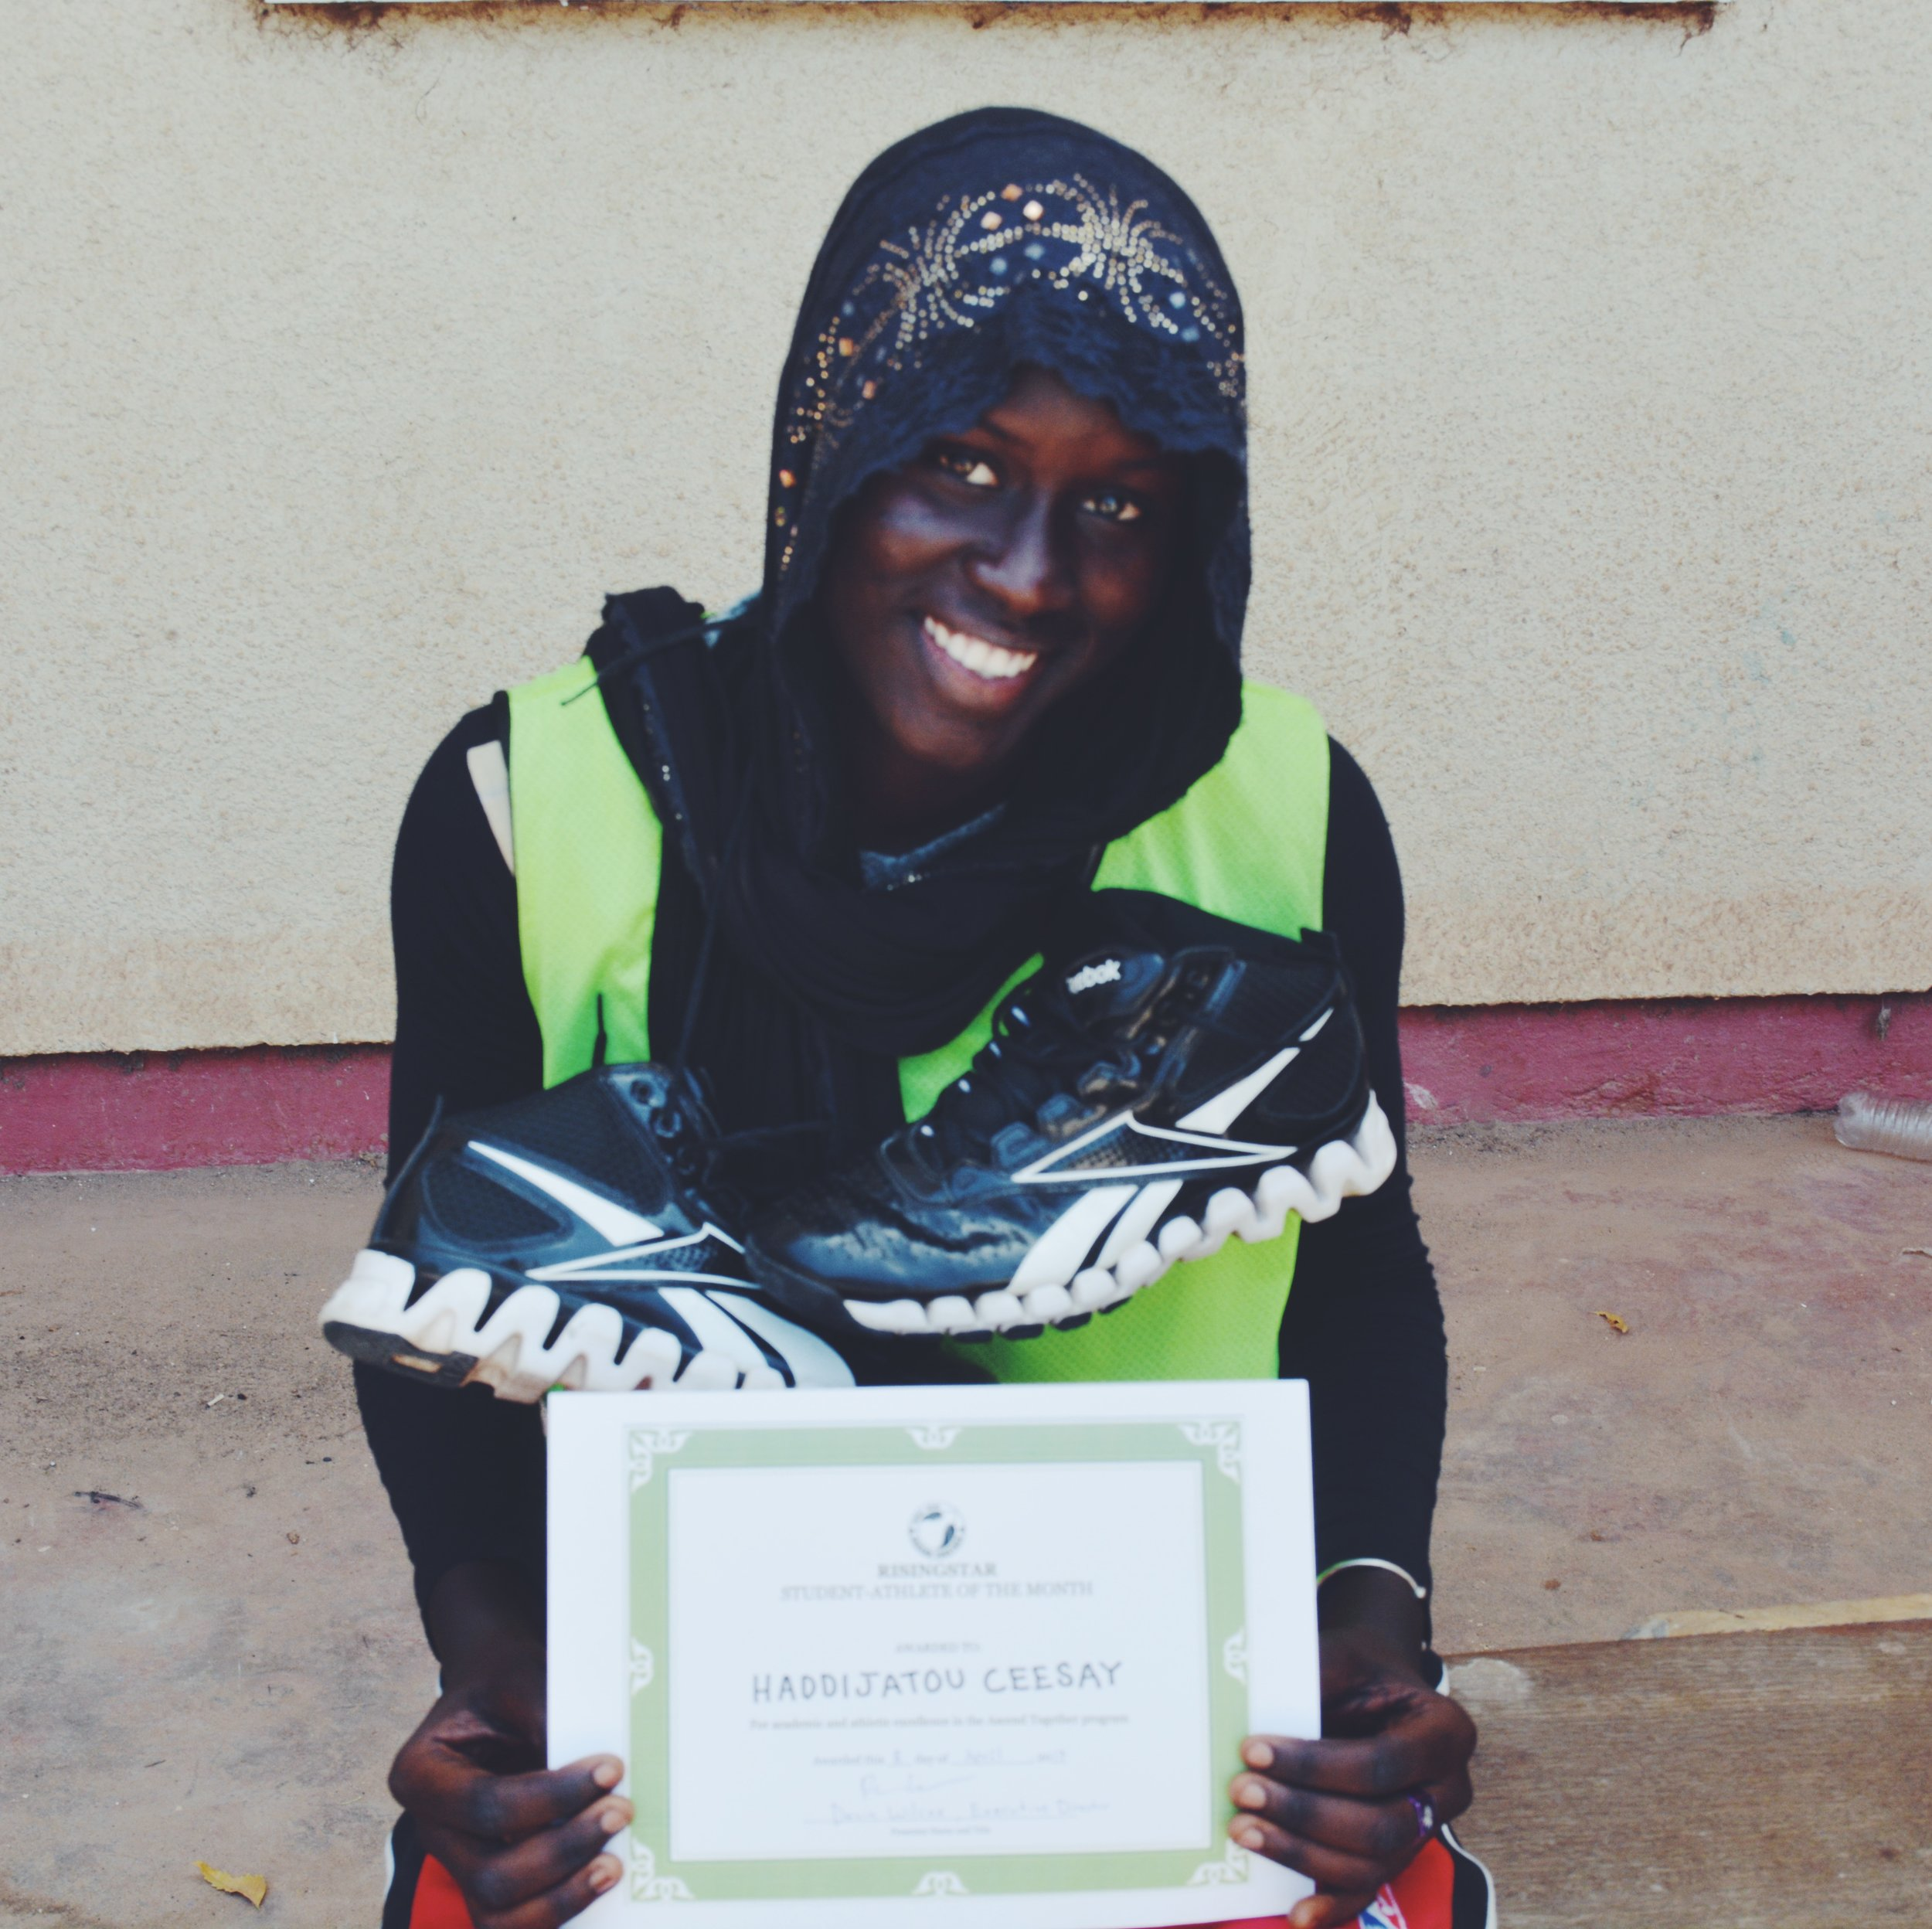 Haddijatou Ceesay, 16 years old, grade 11. Kotu Student-Athlete of the Month, March 2017.